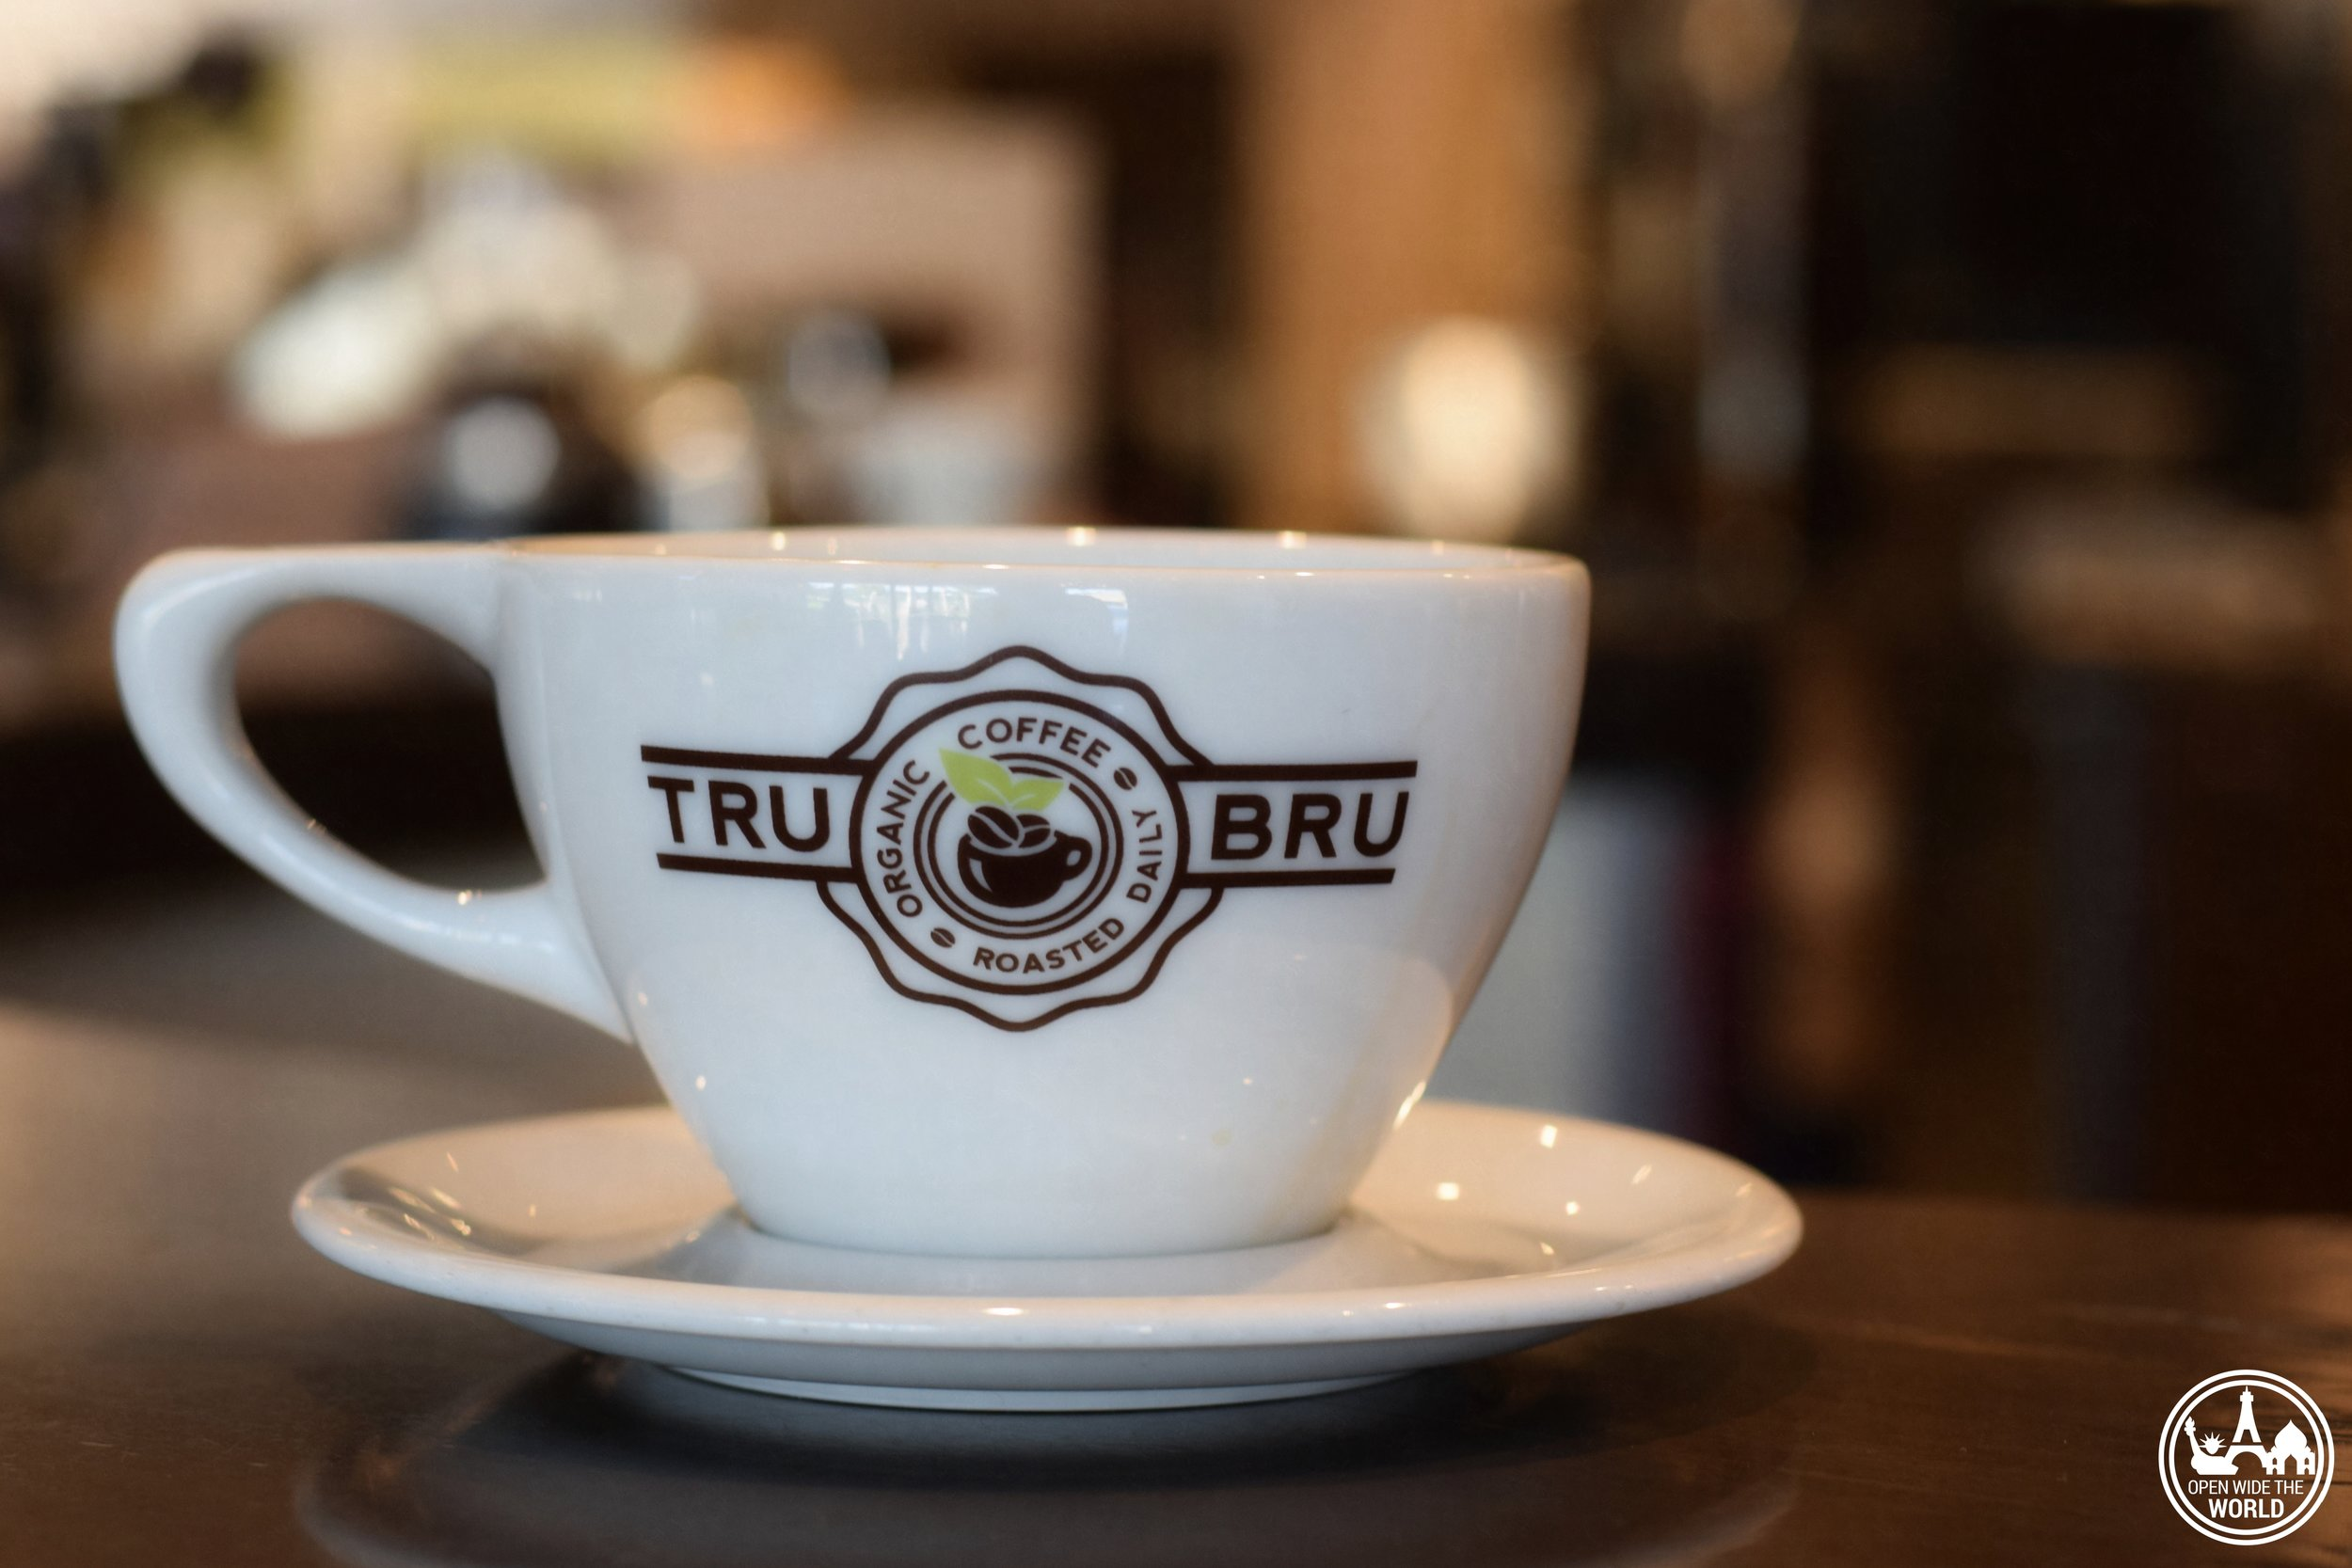 Third wave coffee arrived late, but hit hard in Orange County, California. Check out our five top picks for fair trade / direct trade coffee in this part of Southern California.Tru Bru Coffee,one of our picks for The Top 5 Fair Trade/Direct Trade Coffee Shops in Orange County, California - by Open Wide the World